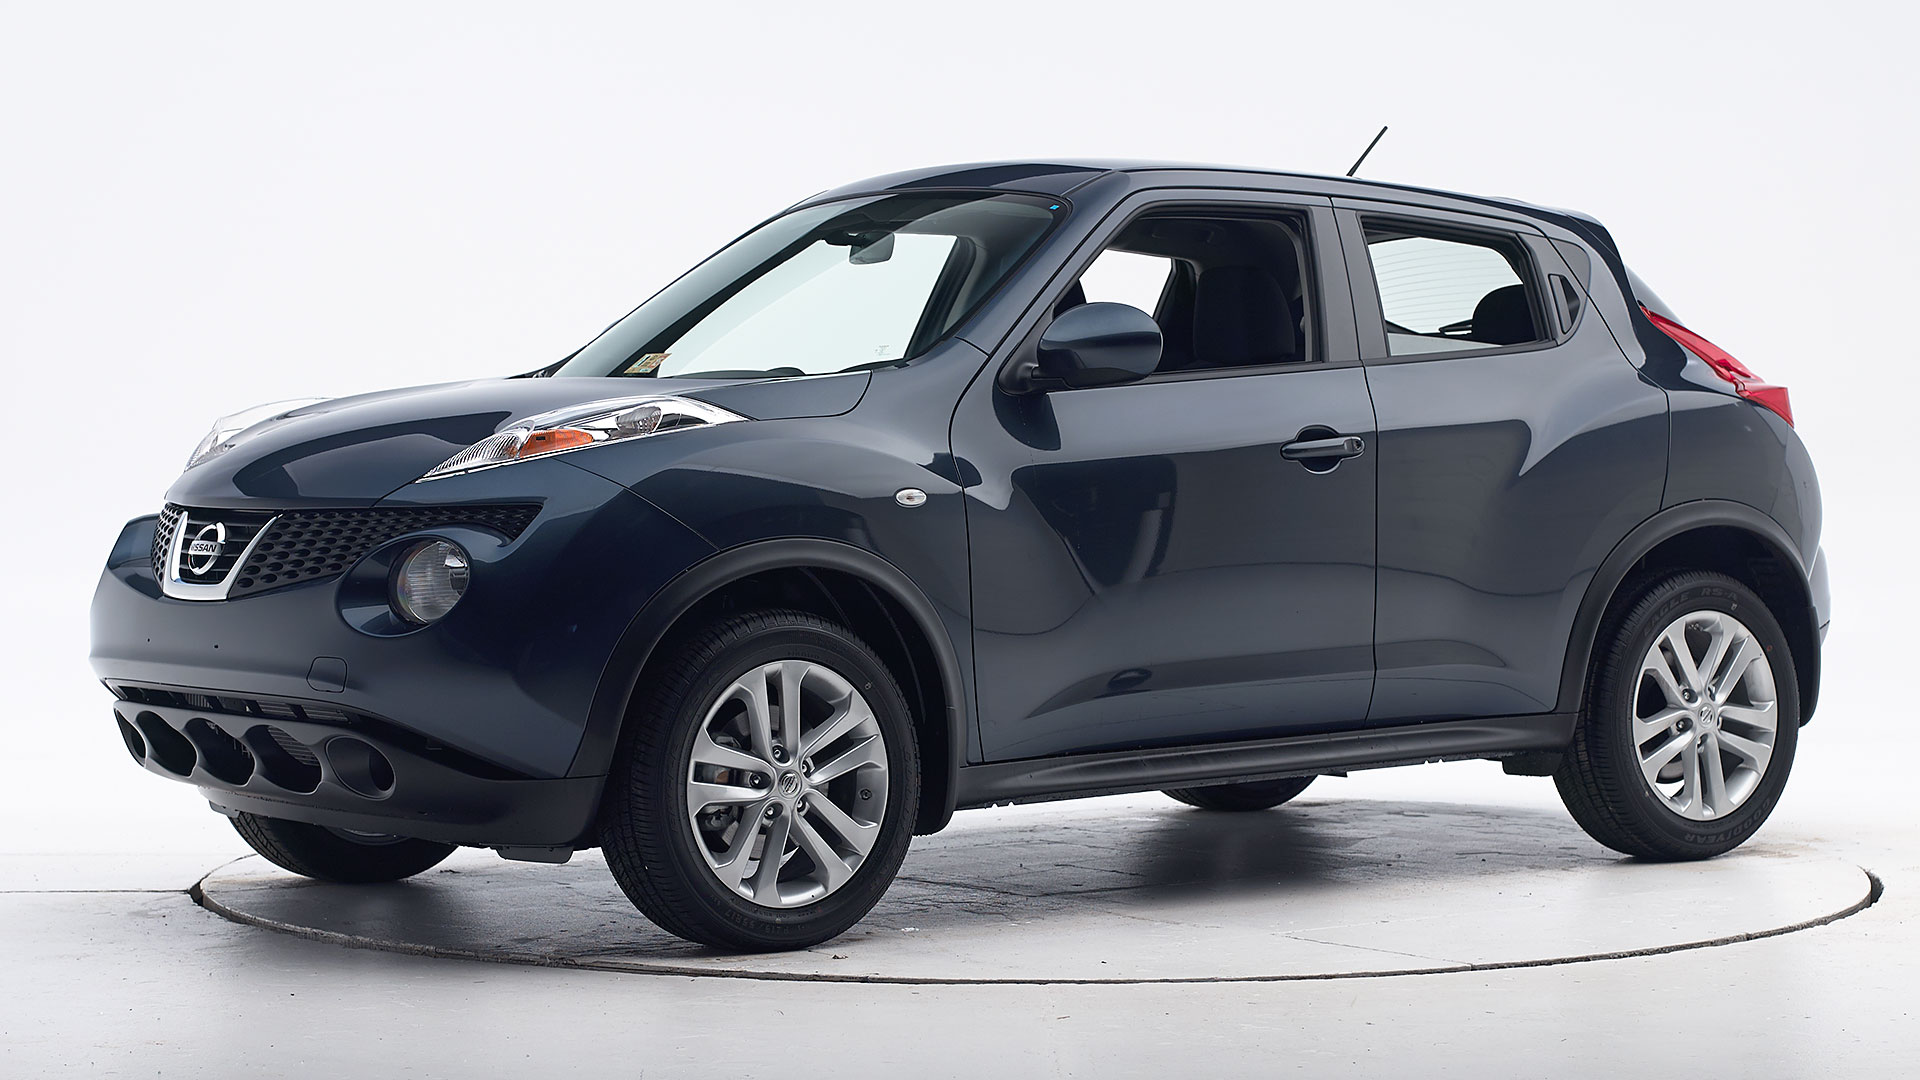 2016 Nissan Juke 4-door hatchback